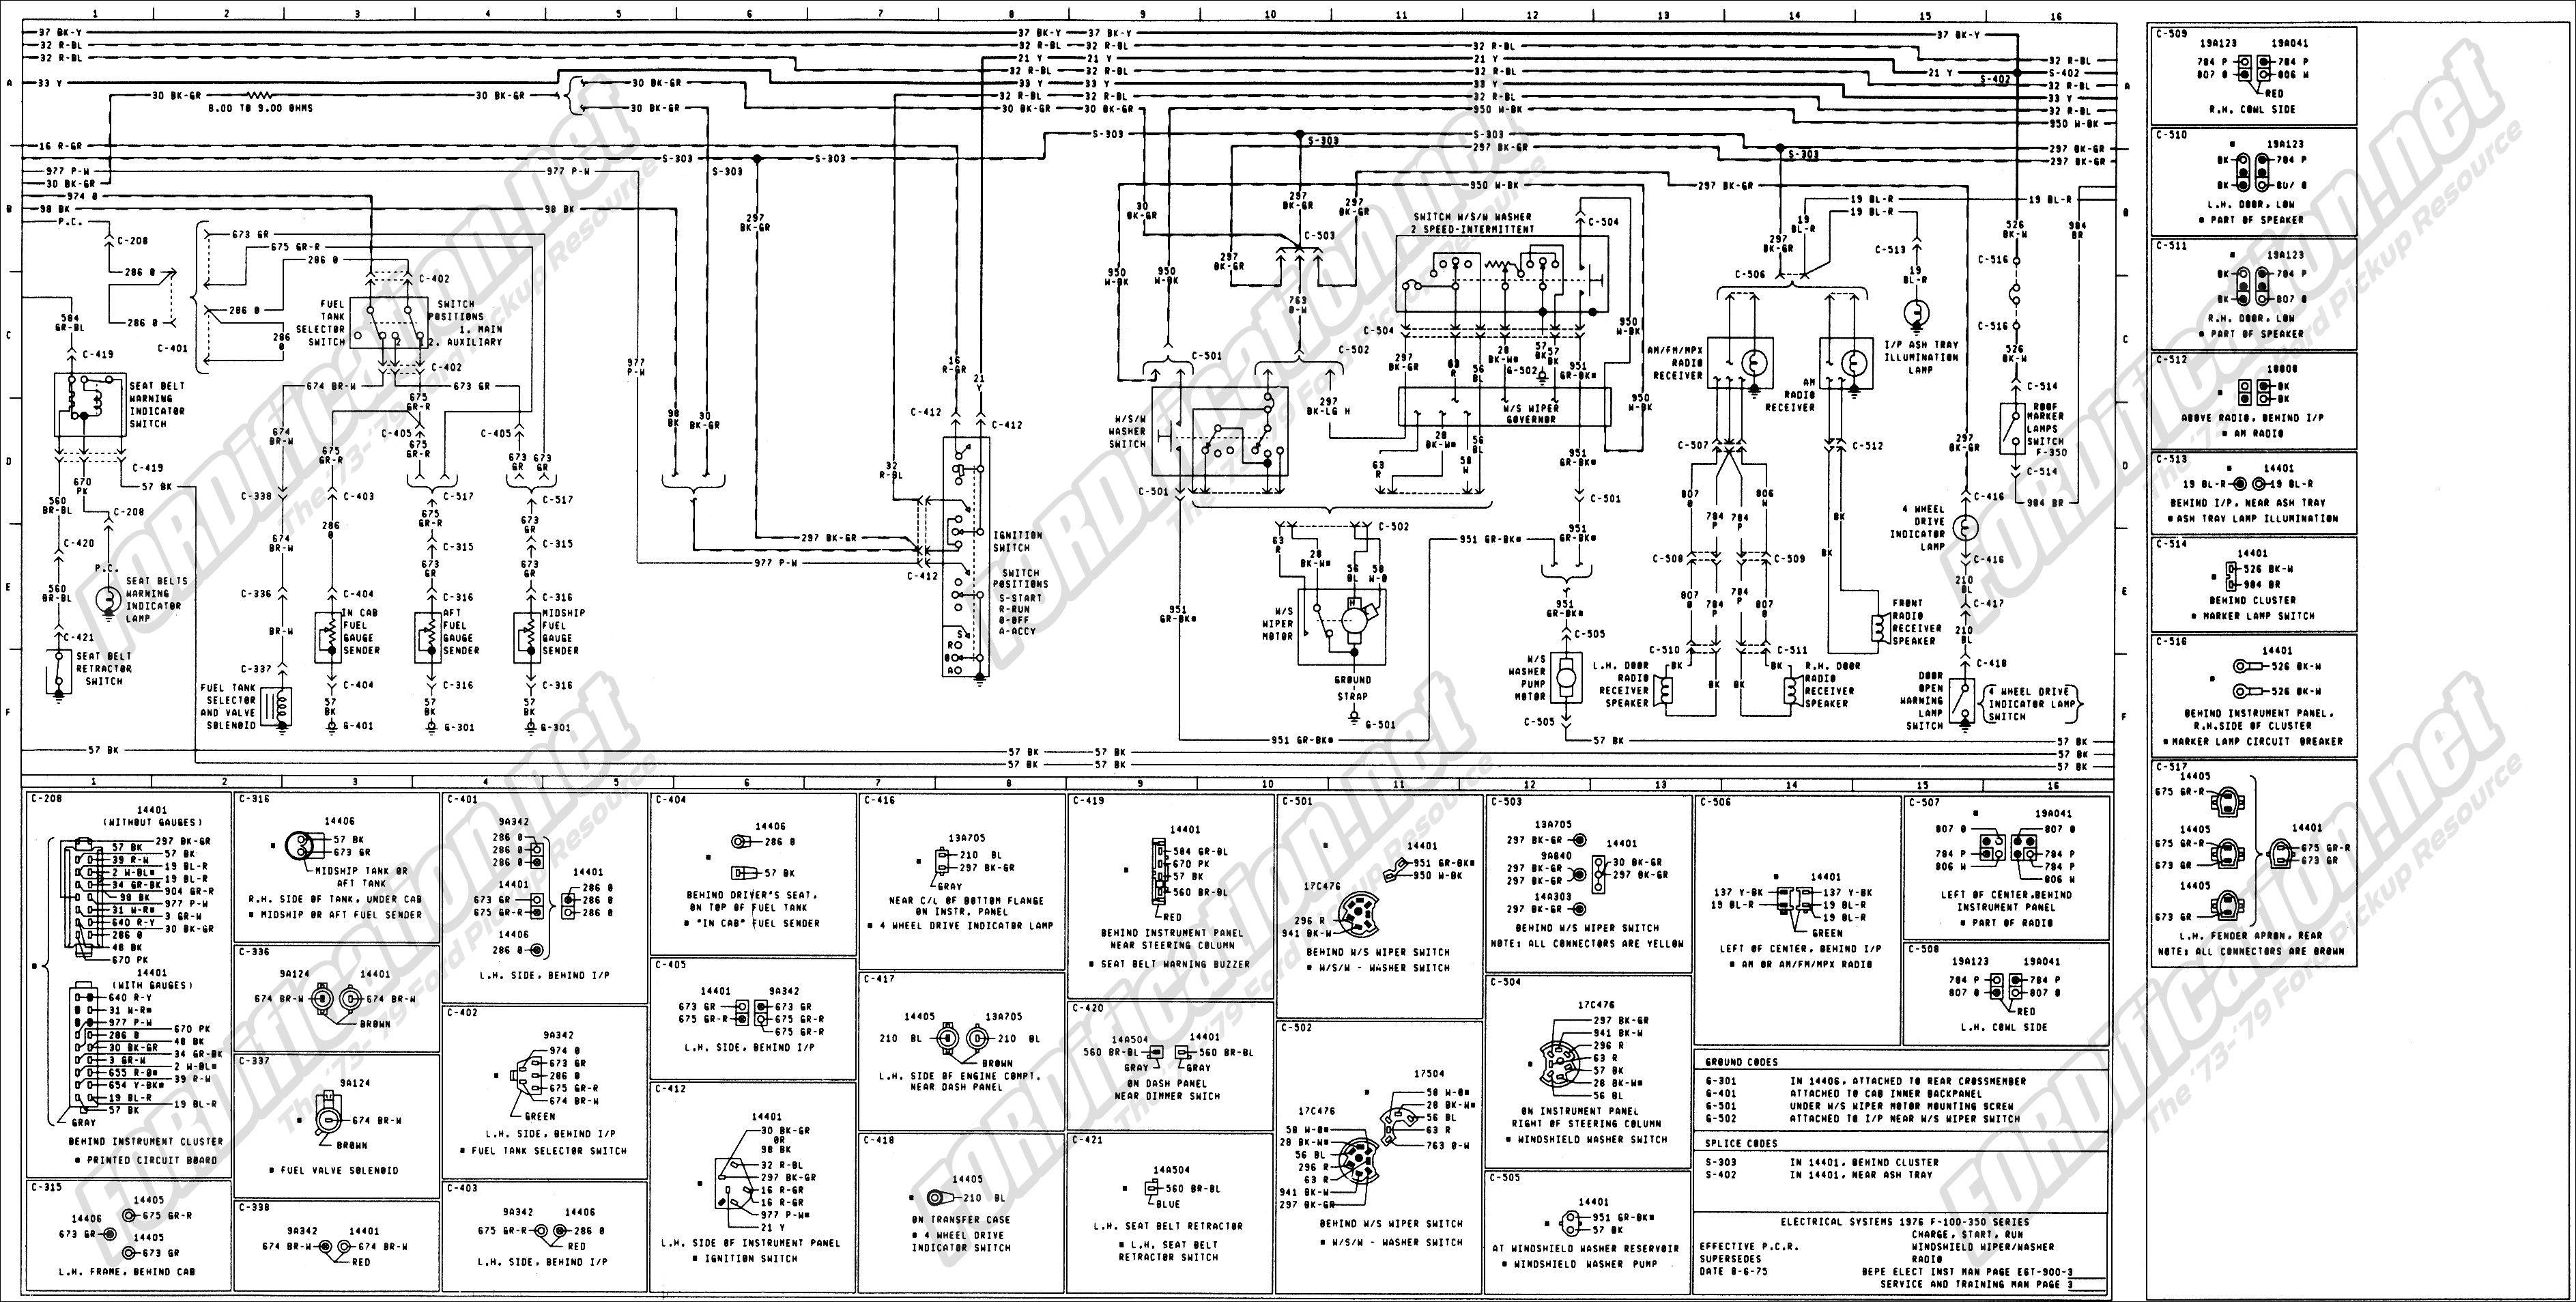 Wiring Master Of on 2000 ford ranger fuse box diagram